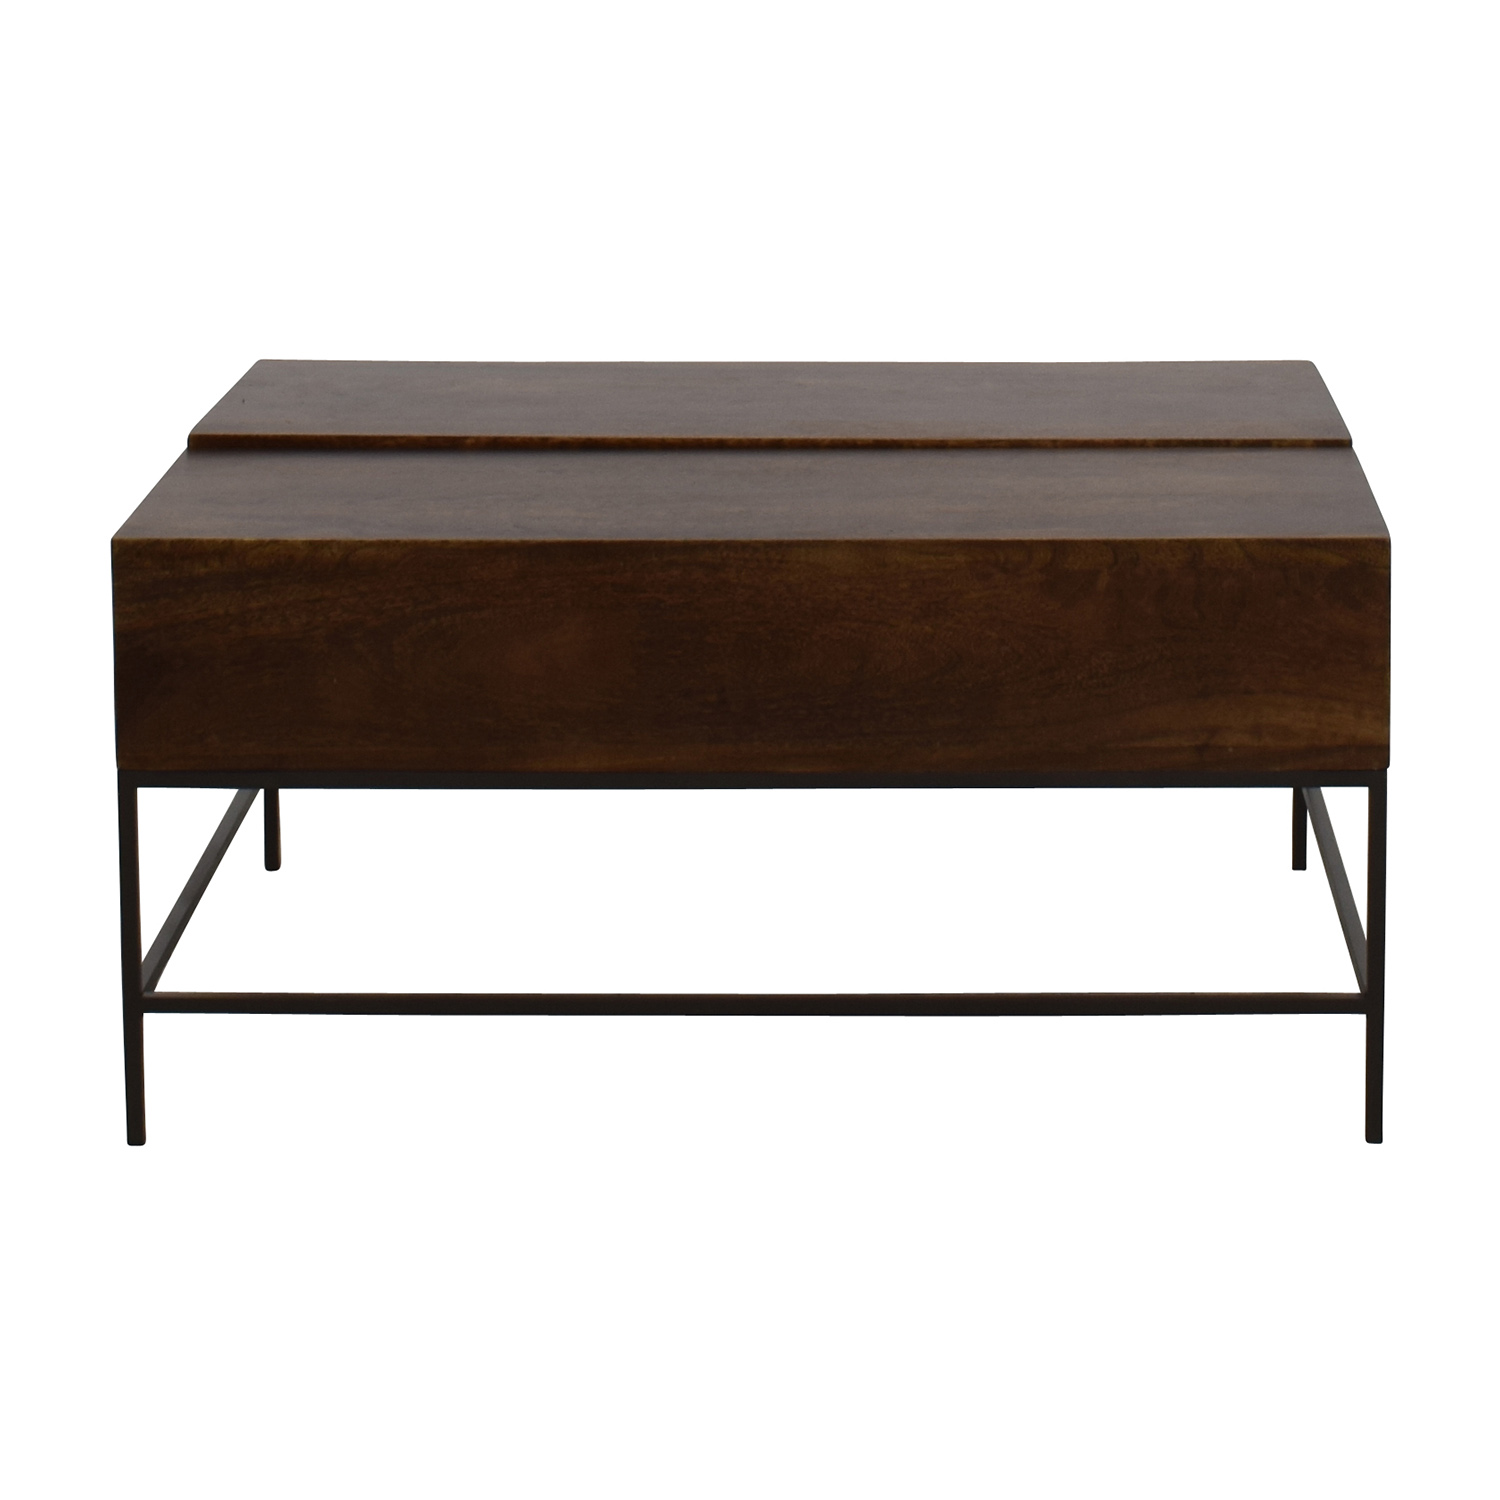 West Elm West Elm Industrial Storage Coffee Table for sale